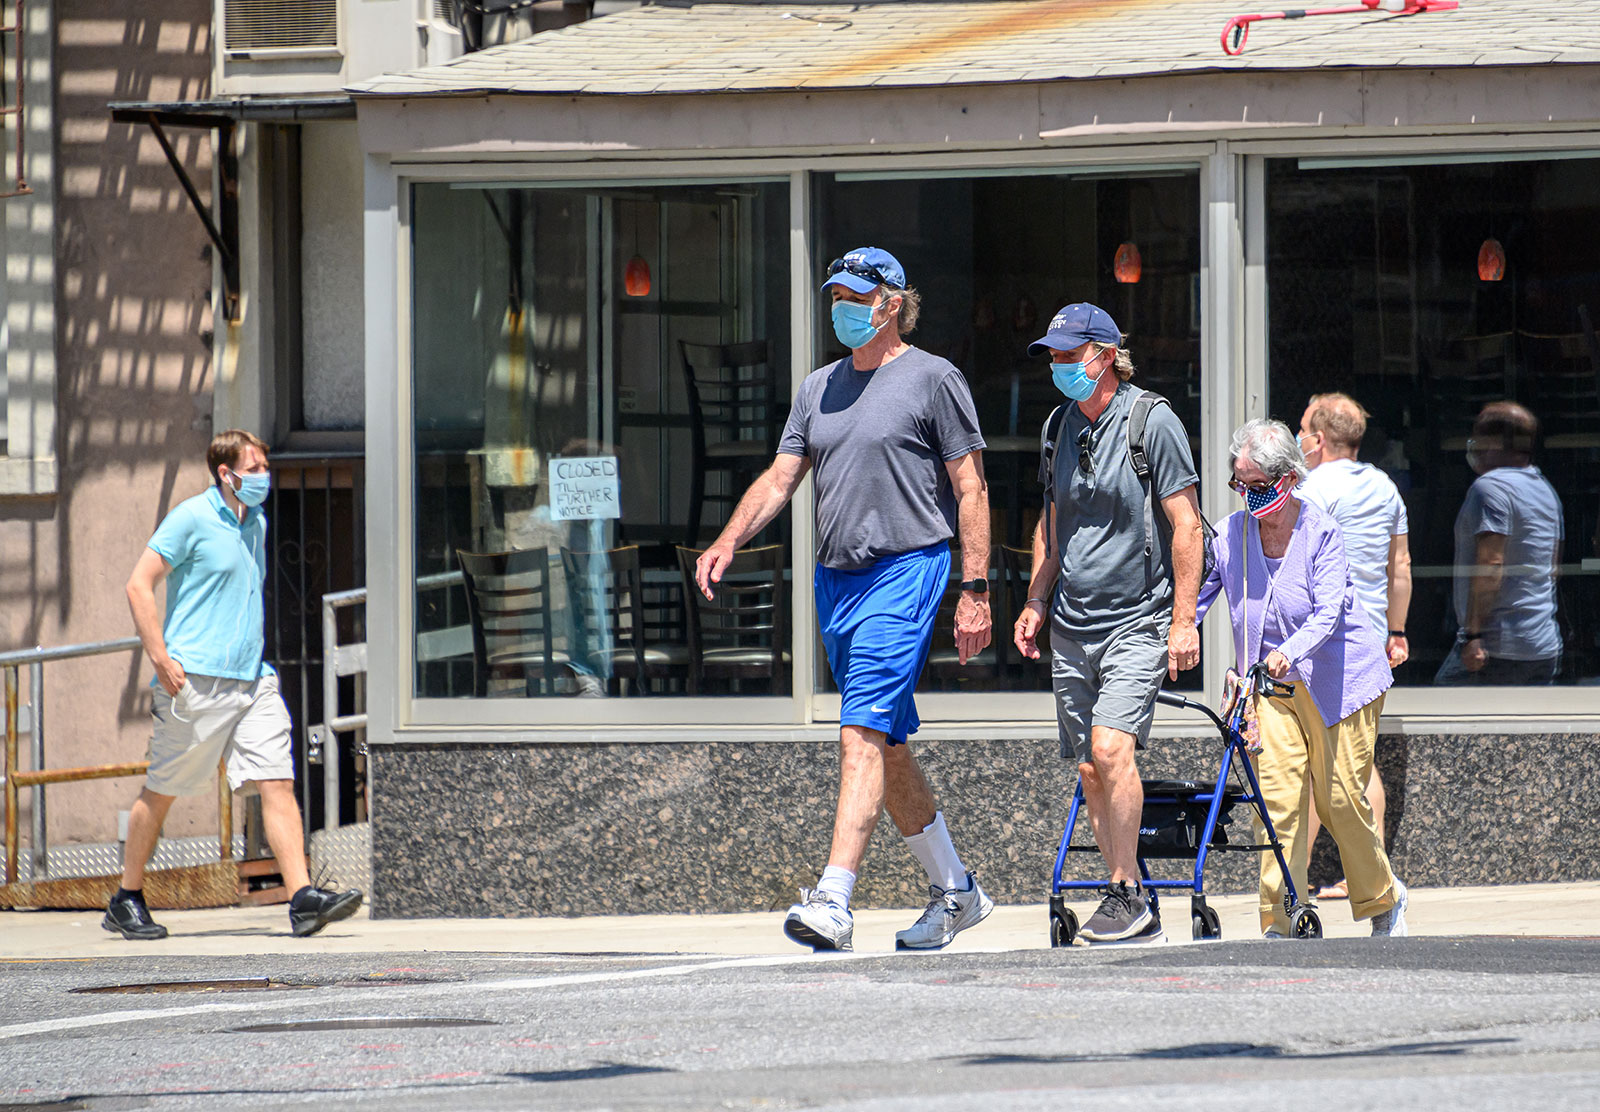 People wear face maskswhile walking in Manhattan on Tuesday, July 28. Dr. Anthony Fauci said on MSNBC Wednesday that universal wearing of masks is one of five principles that could help stop coronavirus surges happening in states.